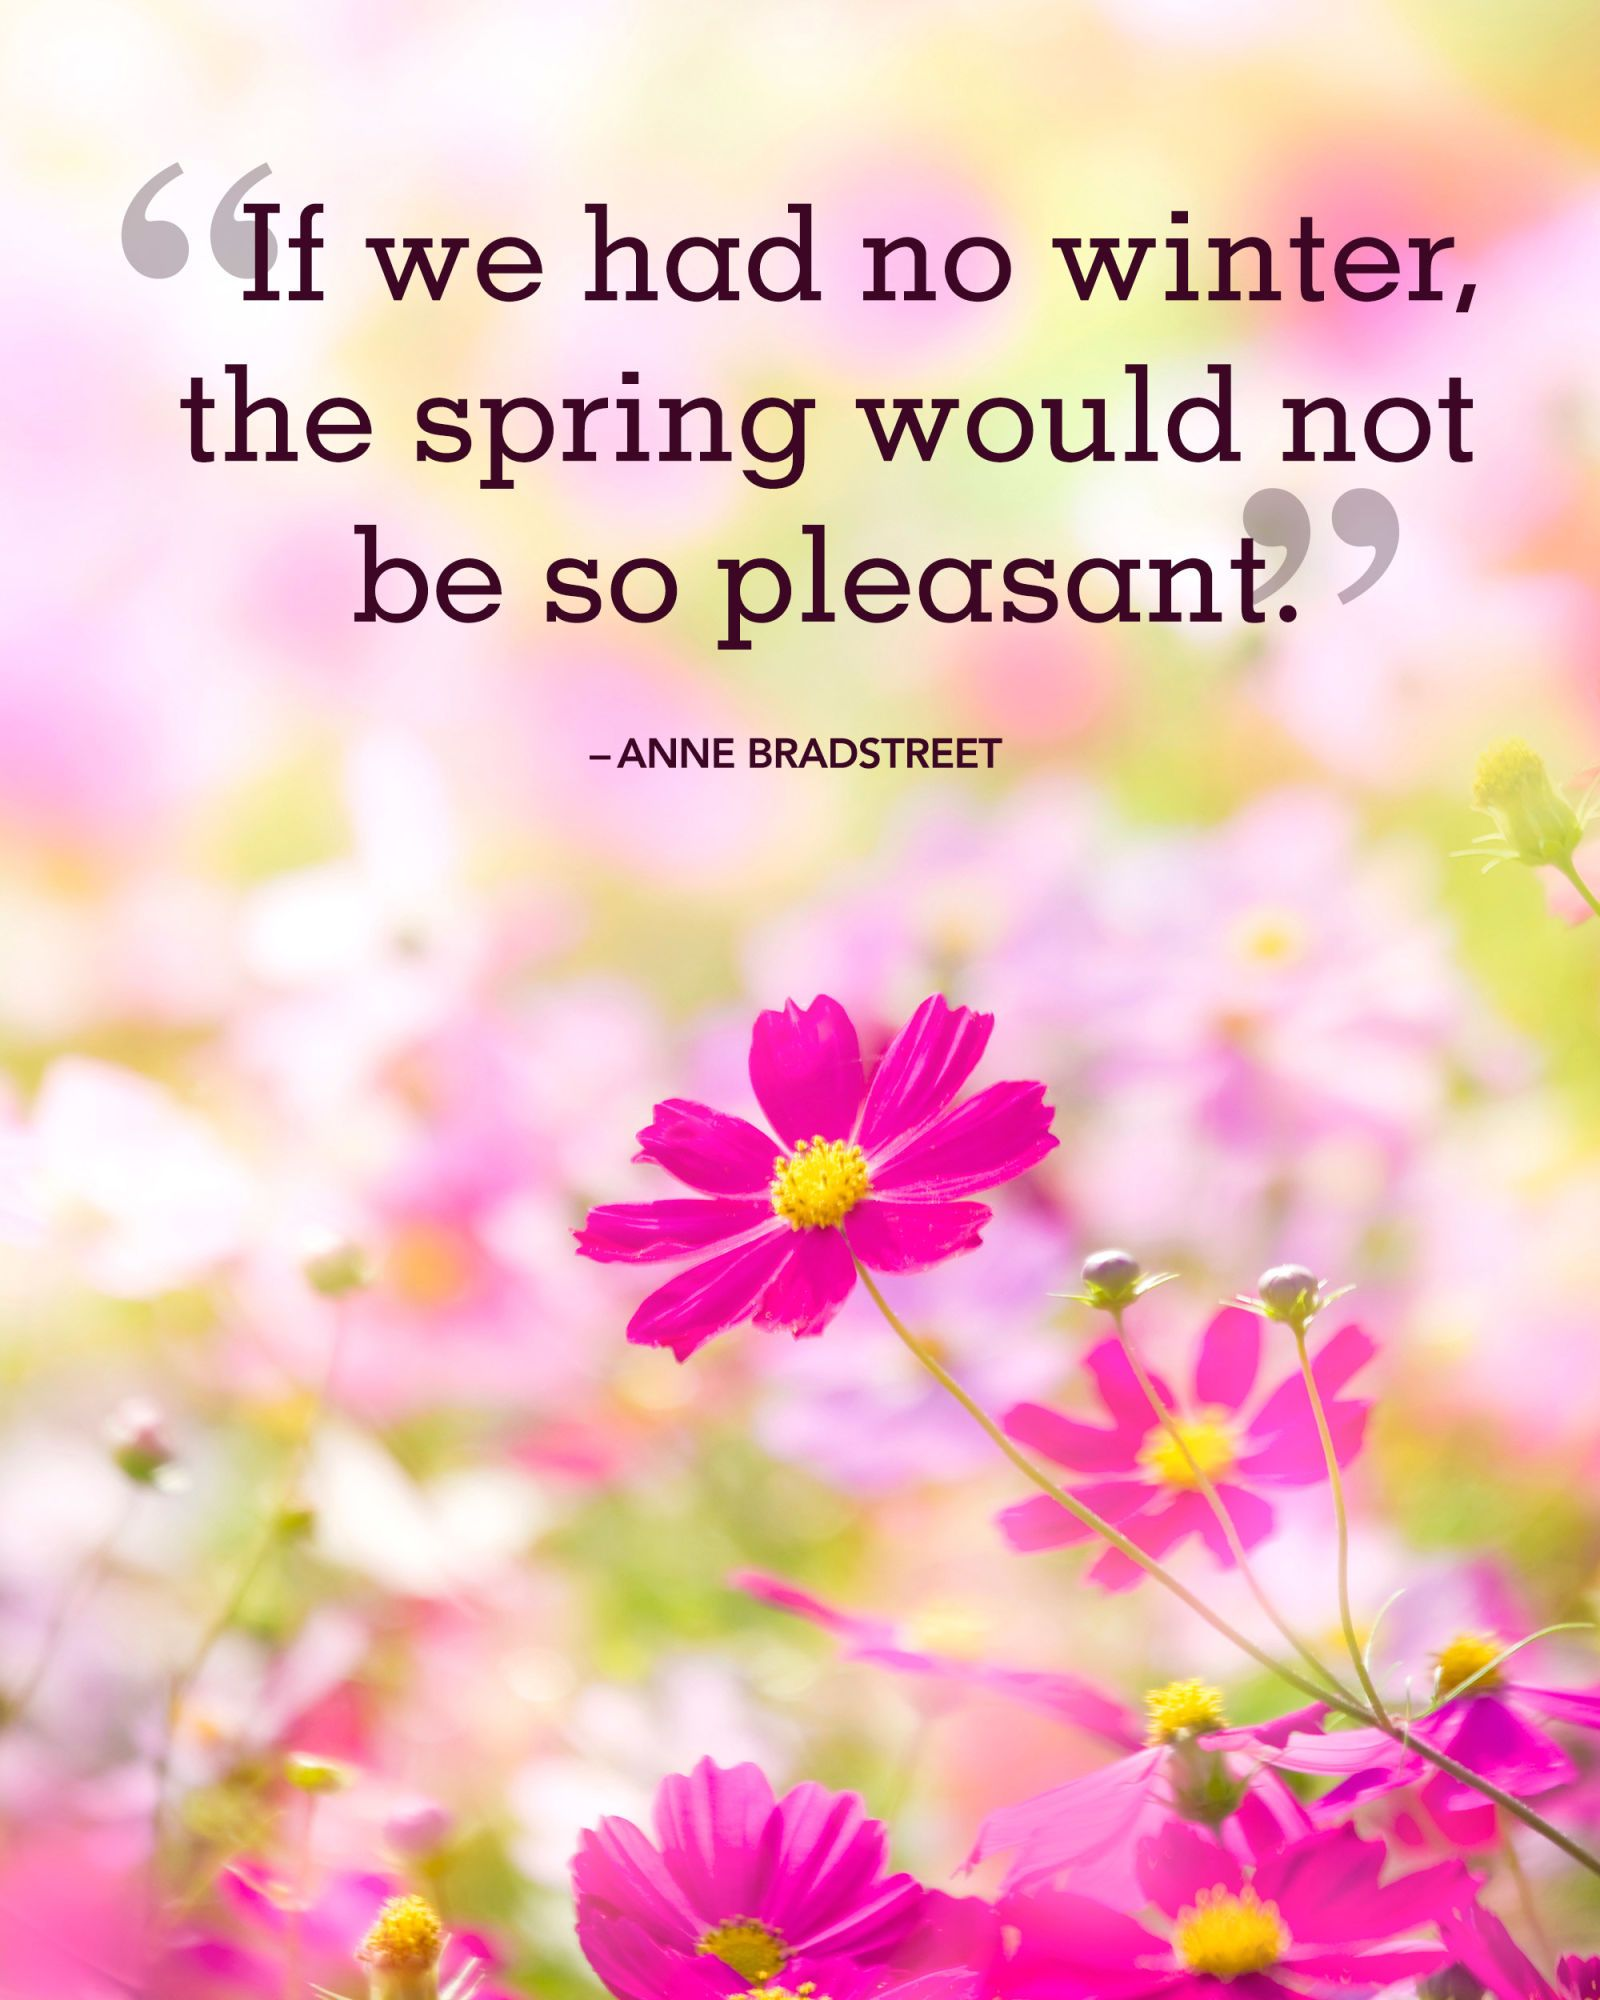 Summer Come Back Quotes: 20 Beautiful Spring Quotes For The Year's Best Season